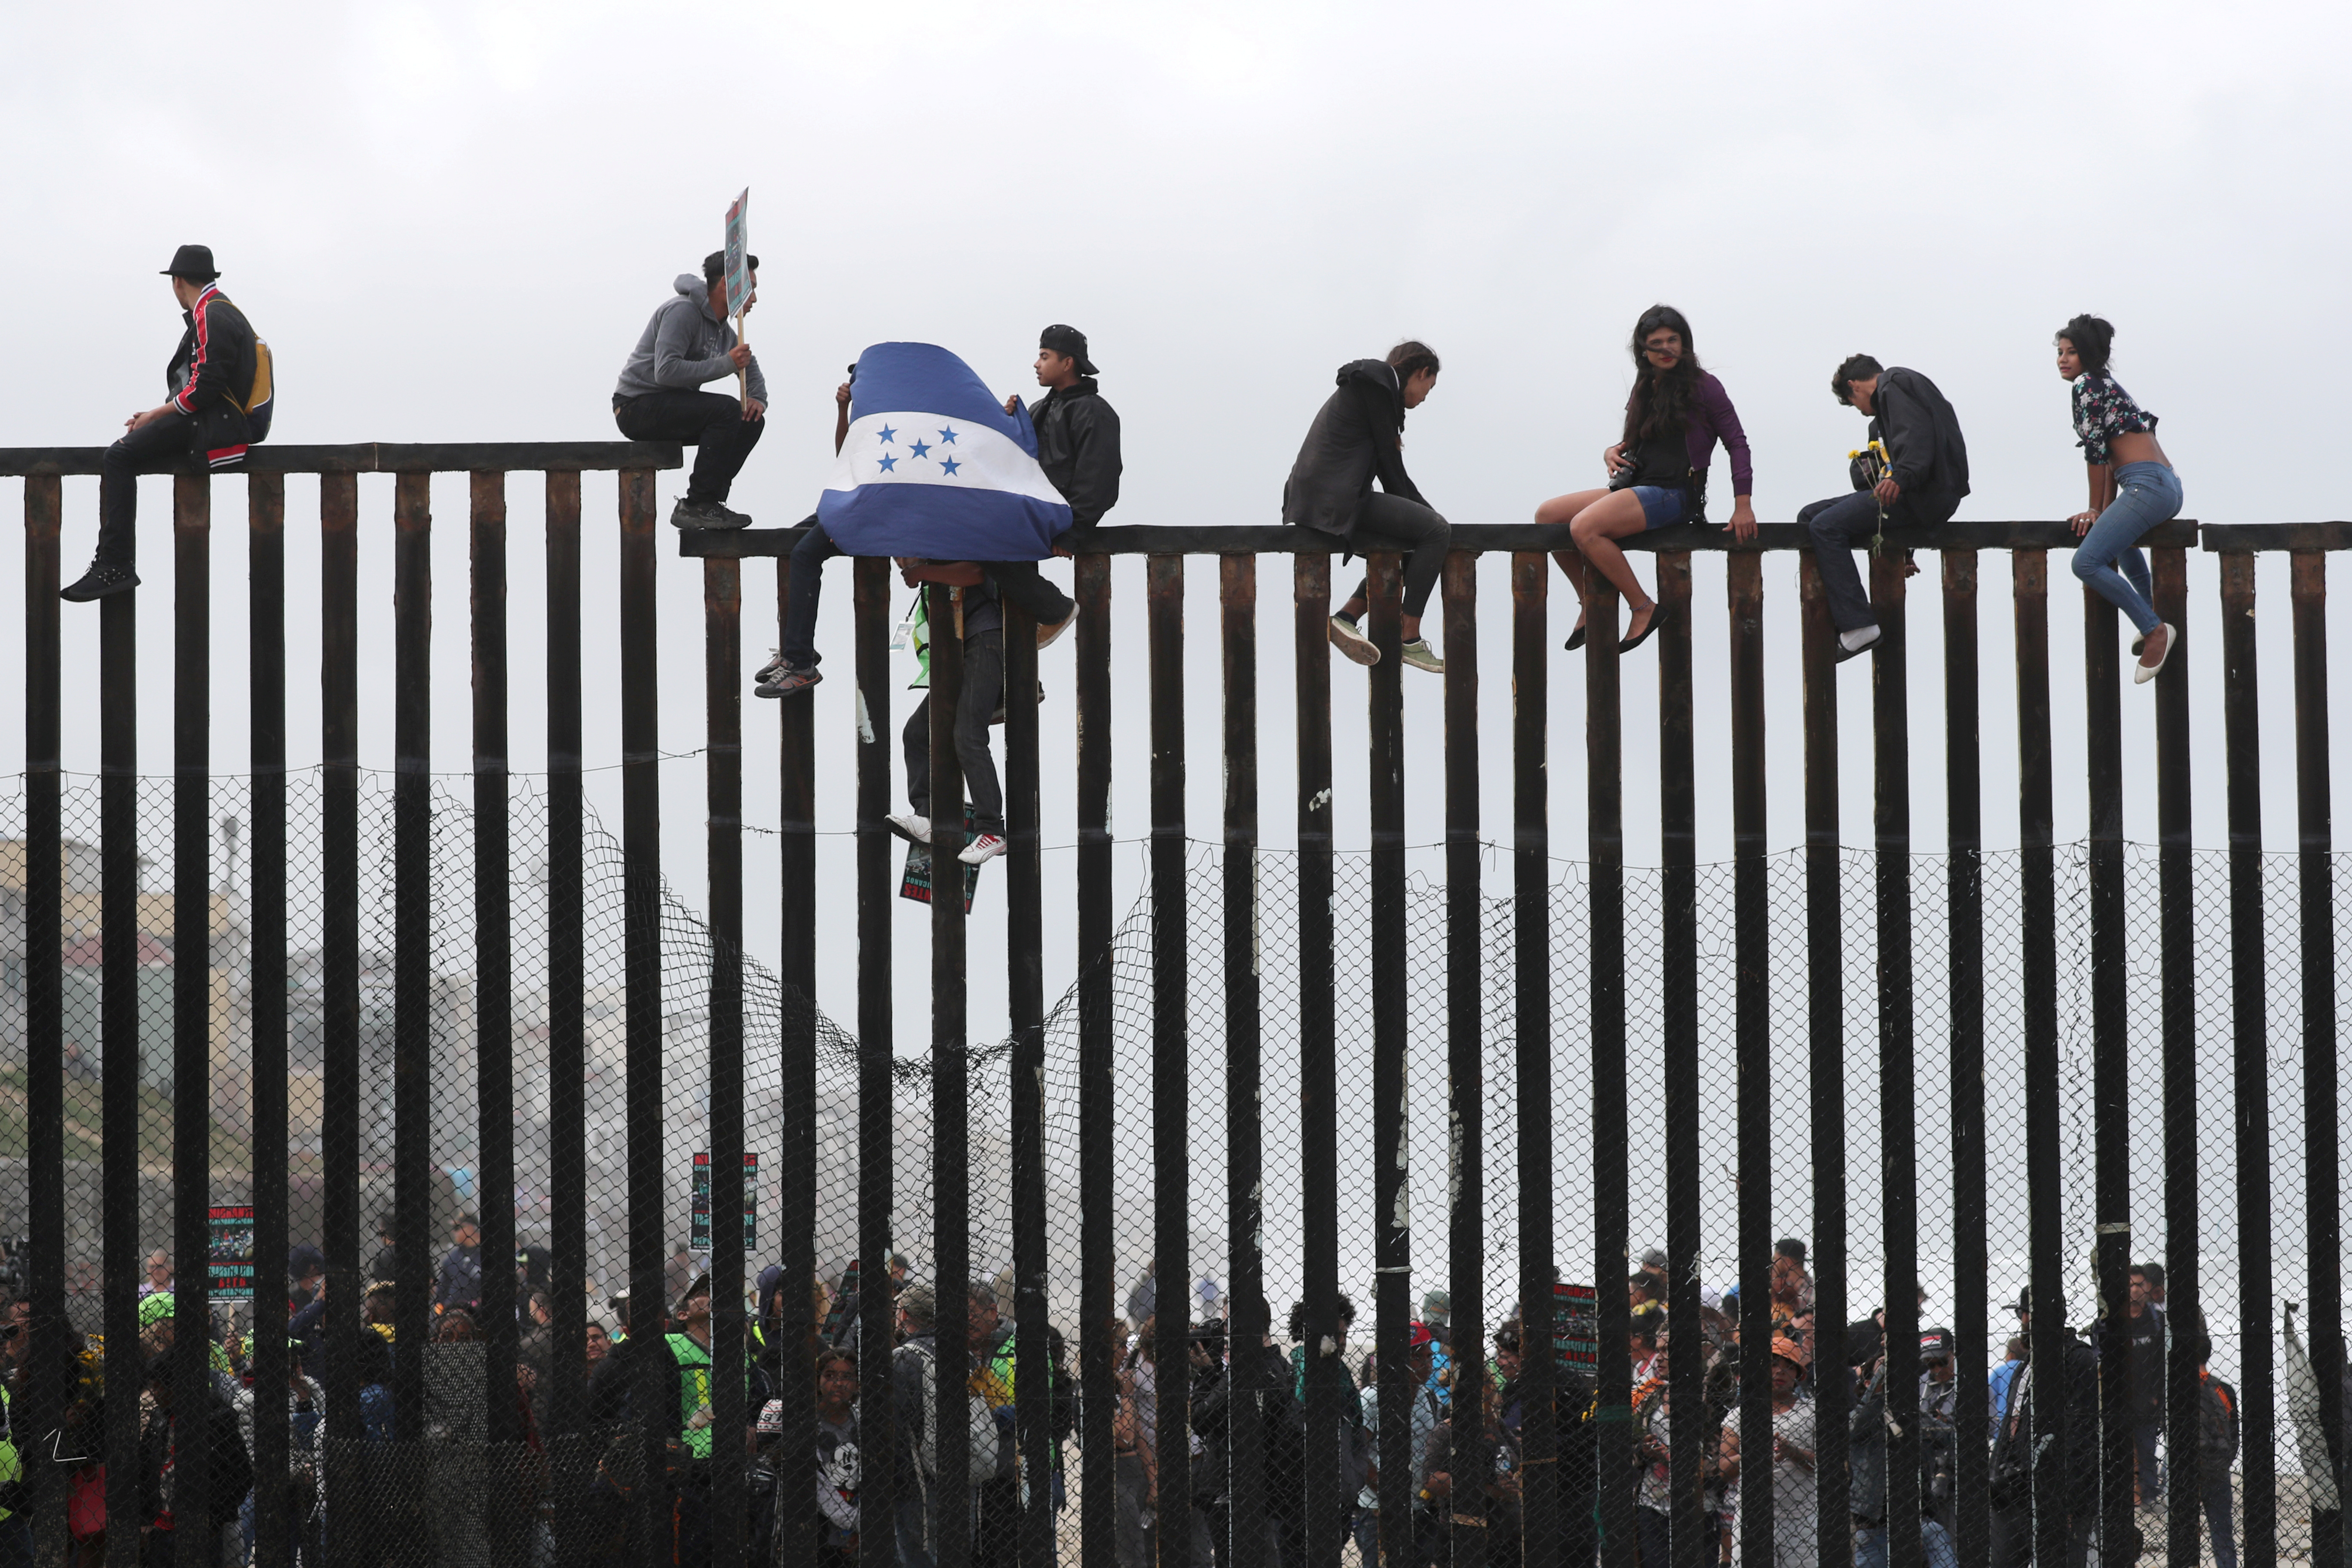 FILE PHOTO: Members of a migrant caravan from Central America and their supporters sit on the top of the U.S.-Mexico border wall at Border Field State Park before making an asylum request, in San Diego, California, U.S. April 29, 2018. REUTERS/Lucy Nicholson/File Photo